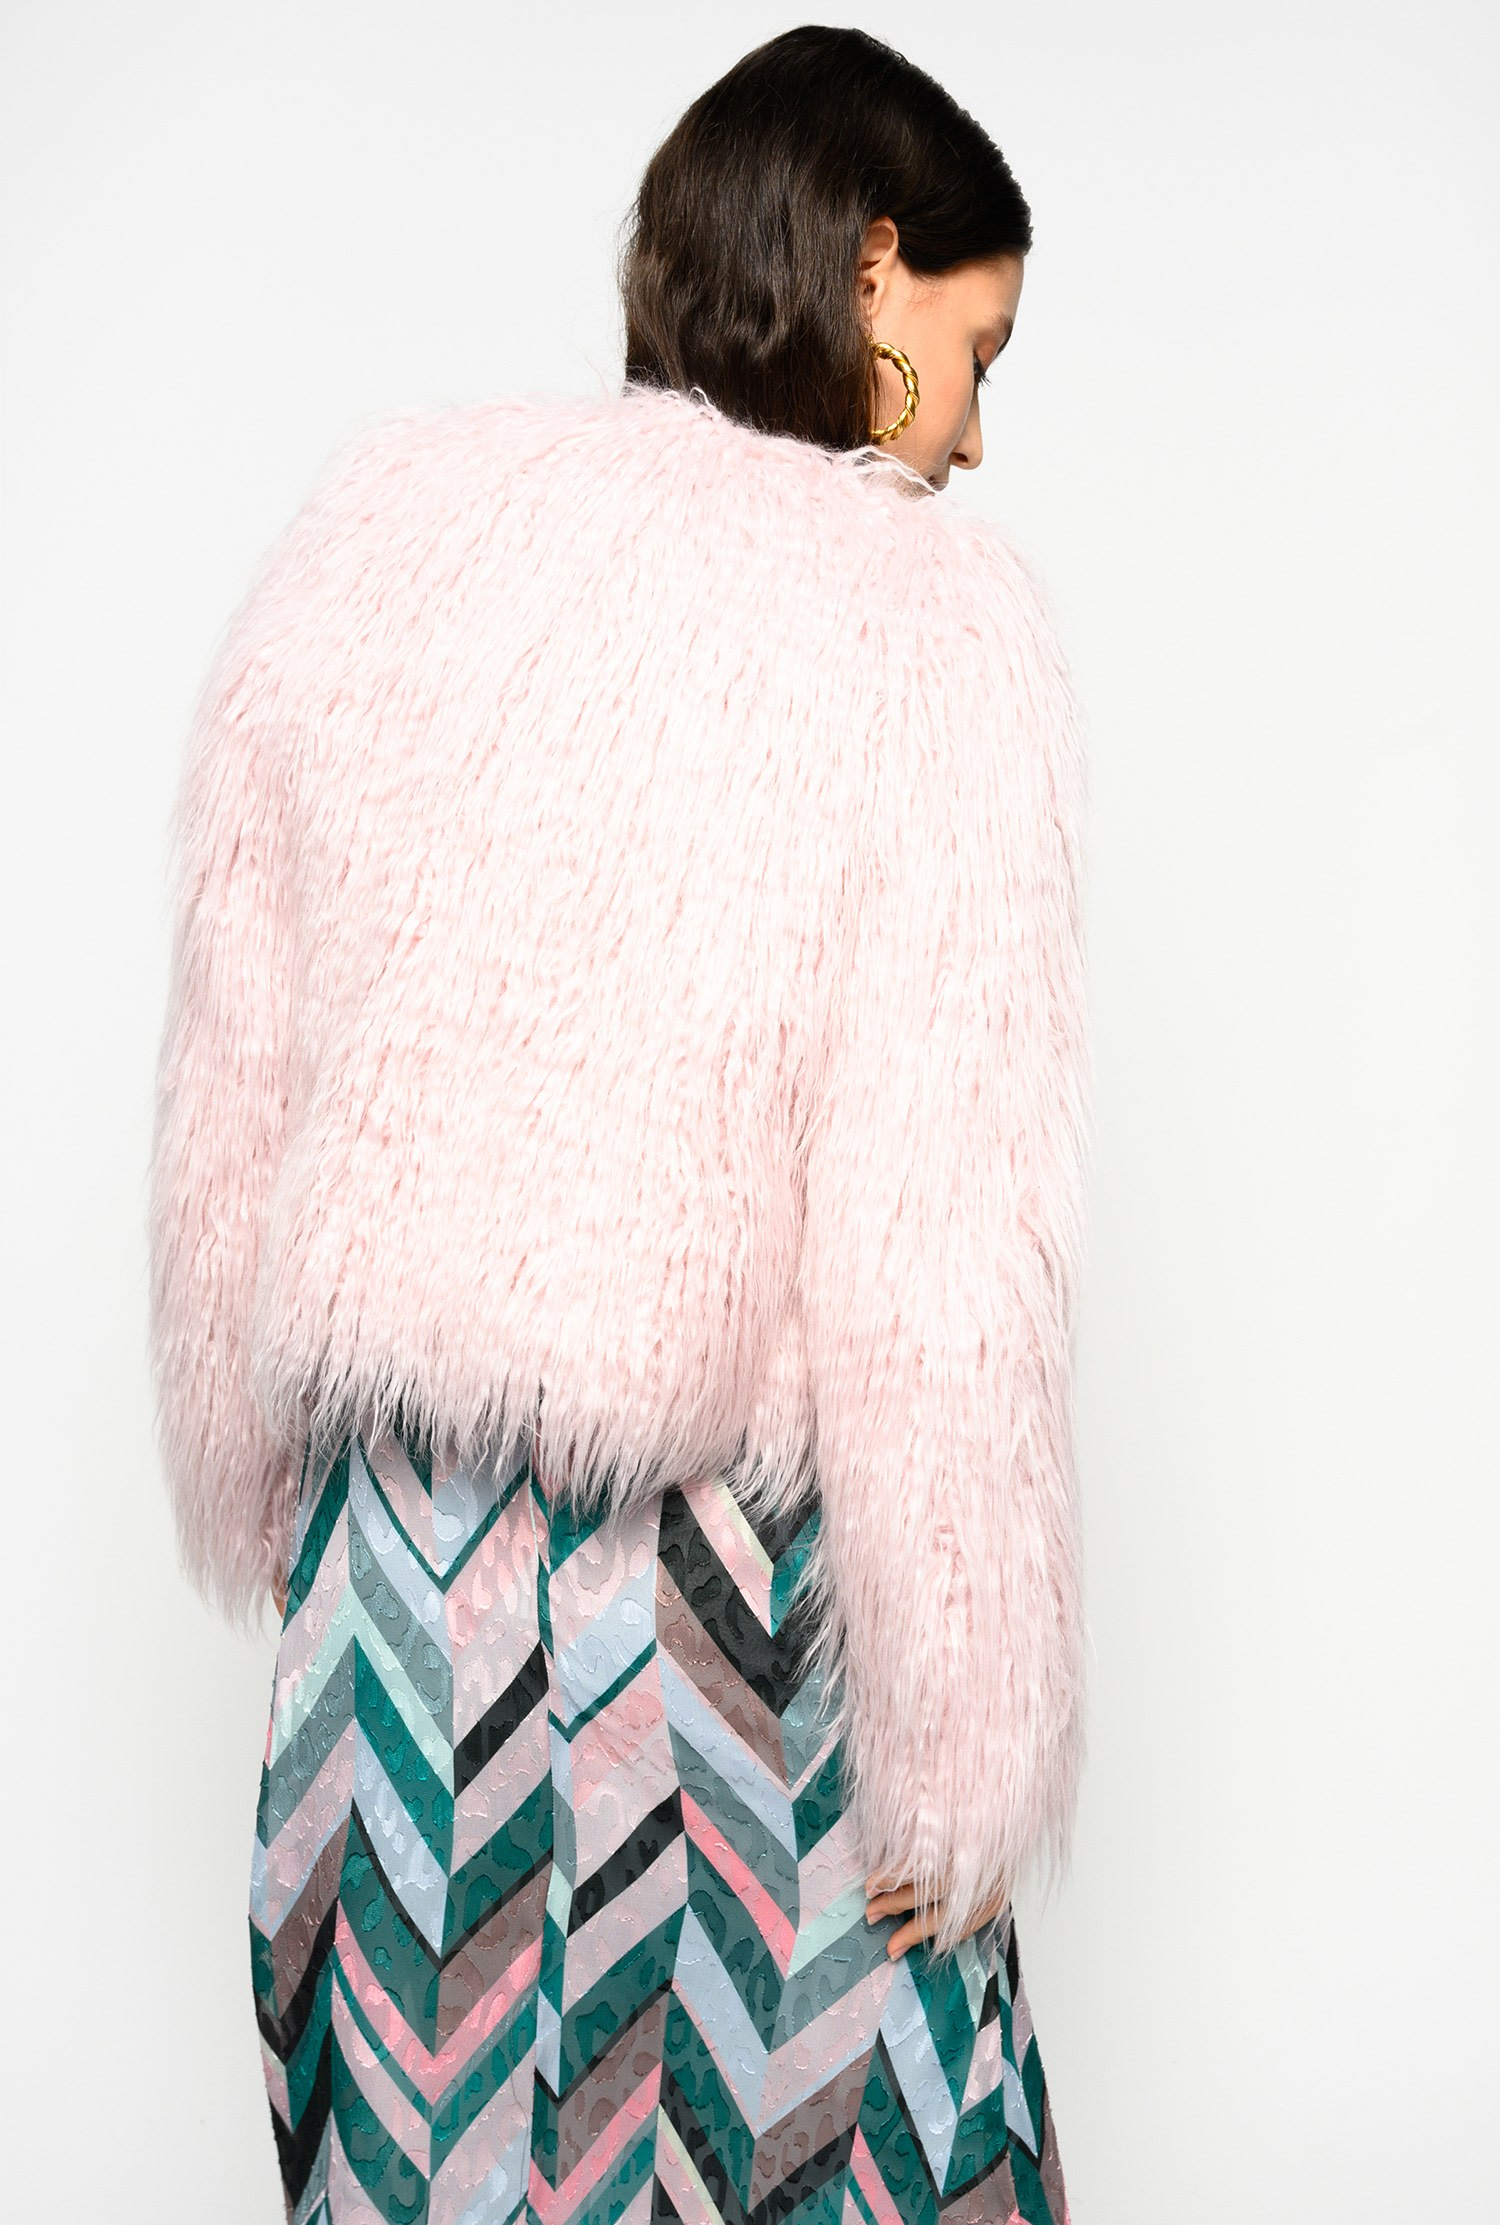 SHOPPING ON LINE PINKO GIACCA BOXY FAUX FUR EFFETTO MONGOLIA GIORNO BOXY NEW COLLECTION WOMEN'S FALL WINTER 2020/2021